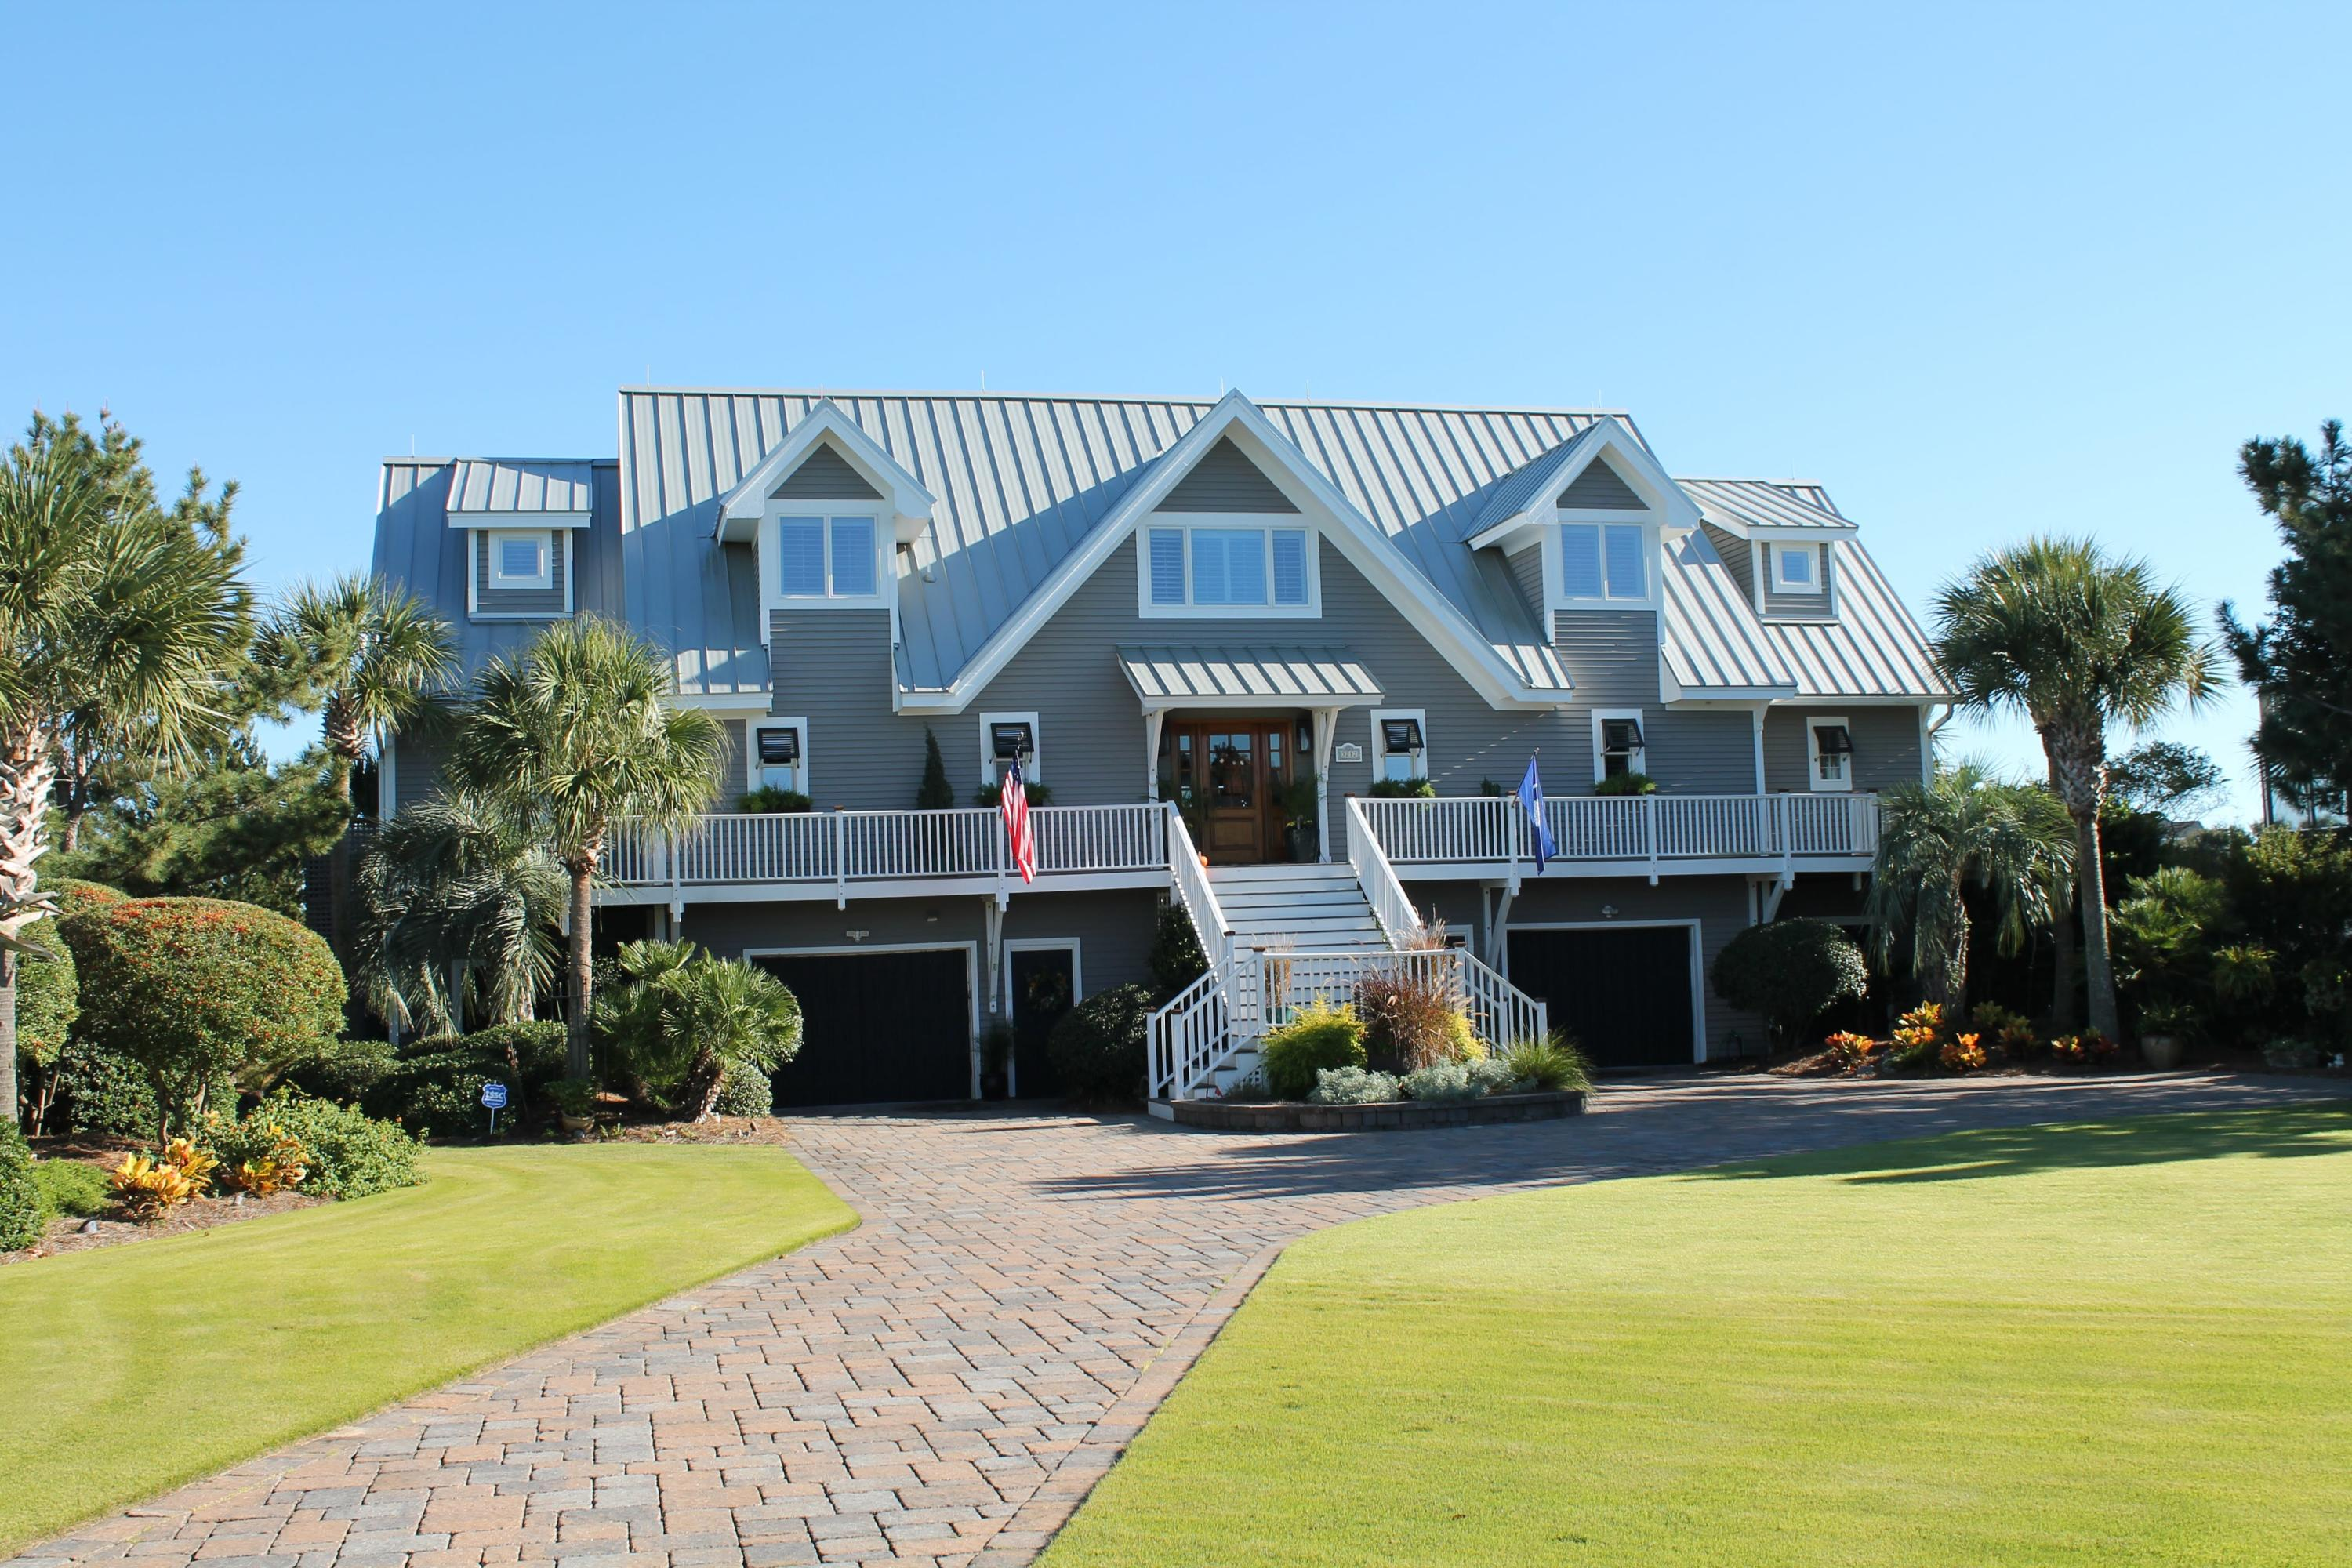 Sullivans Island Homes For Sale - 3217 Middle, Sullivans Island, SC - 26